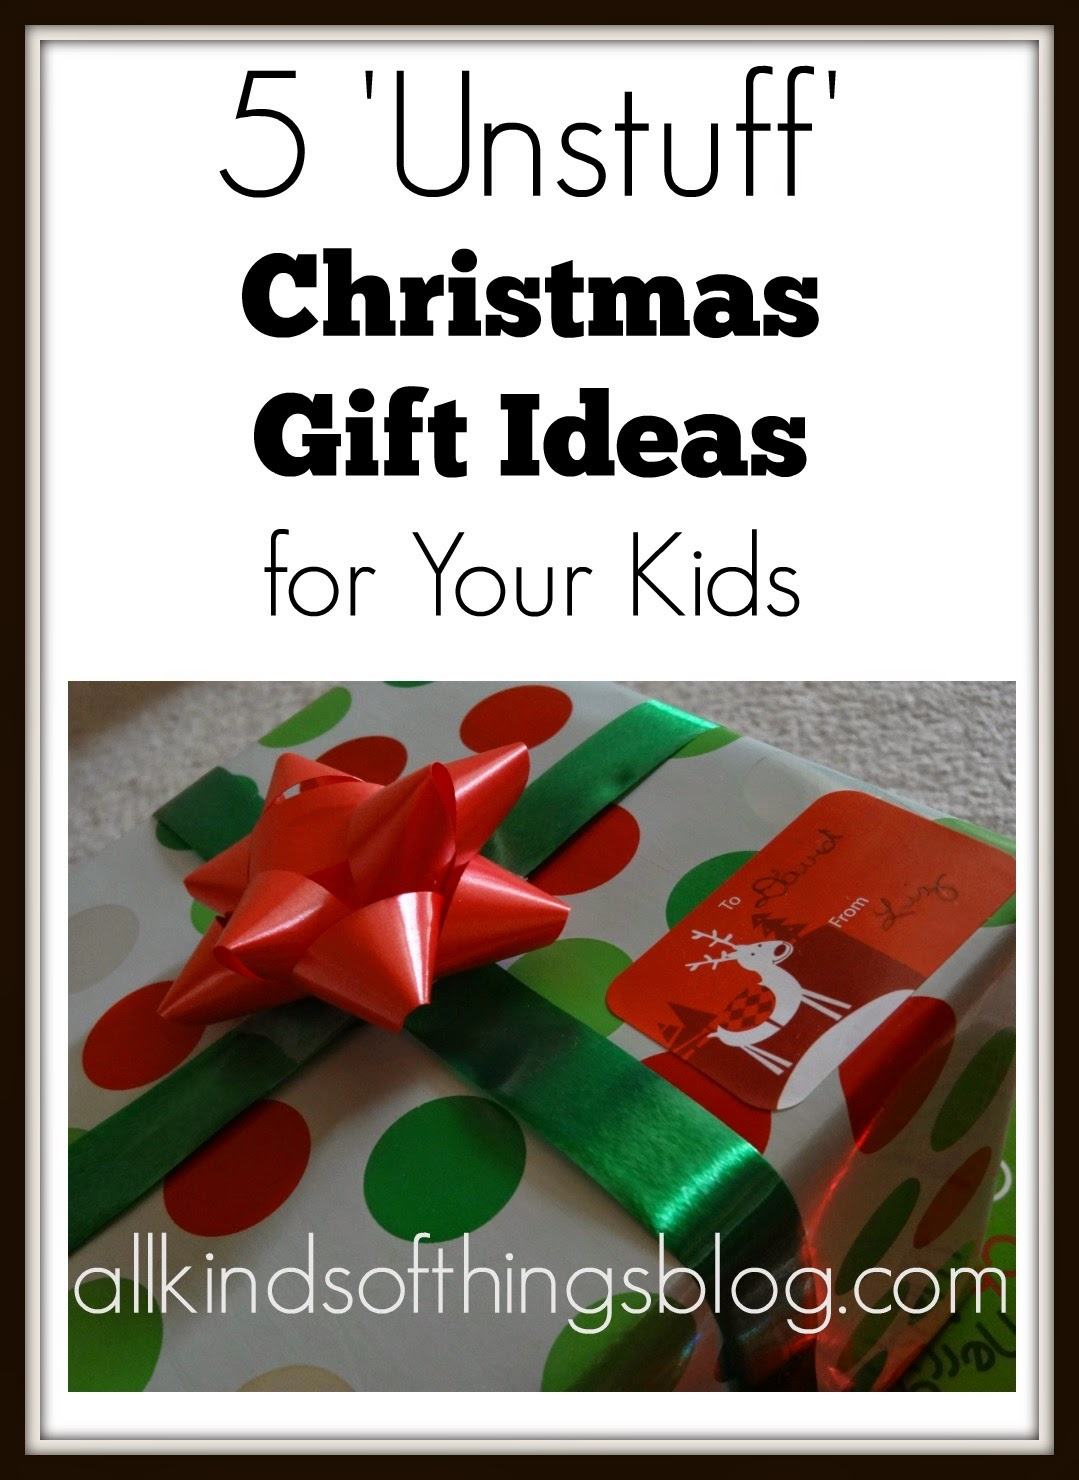 you may have seen some great non toy gift idea posts floating around out there but i want to share with you some ideas that have worked great for us - Best Christmas Gifts 2014 For Kids